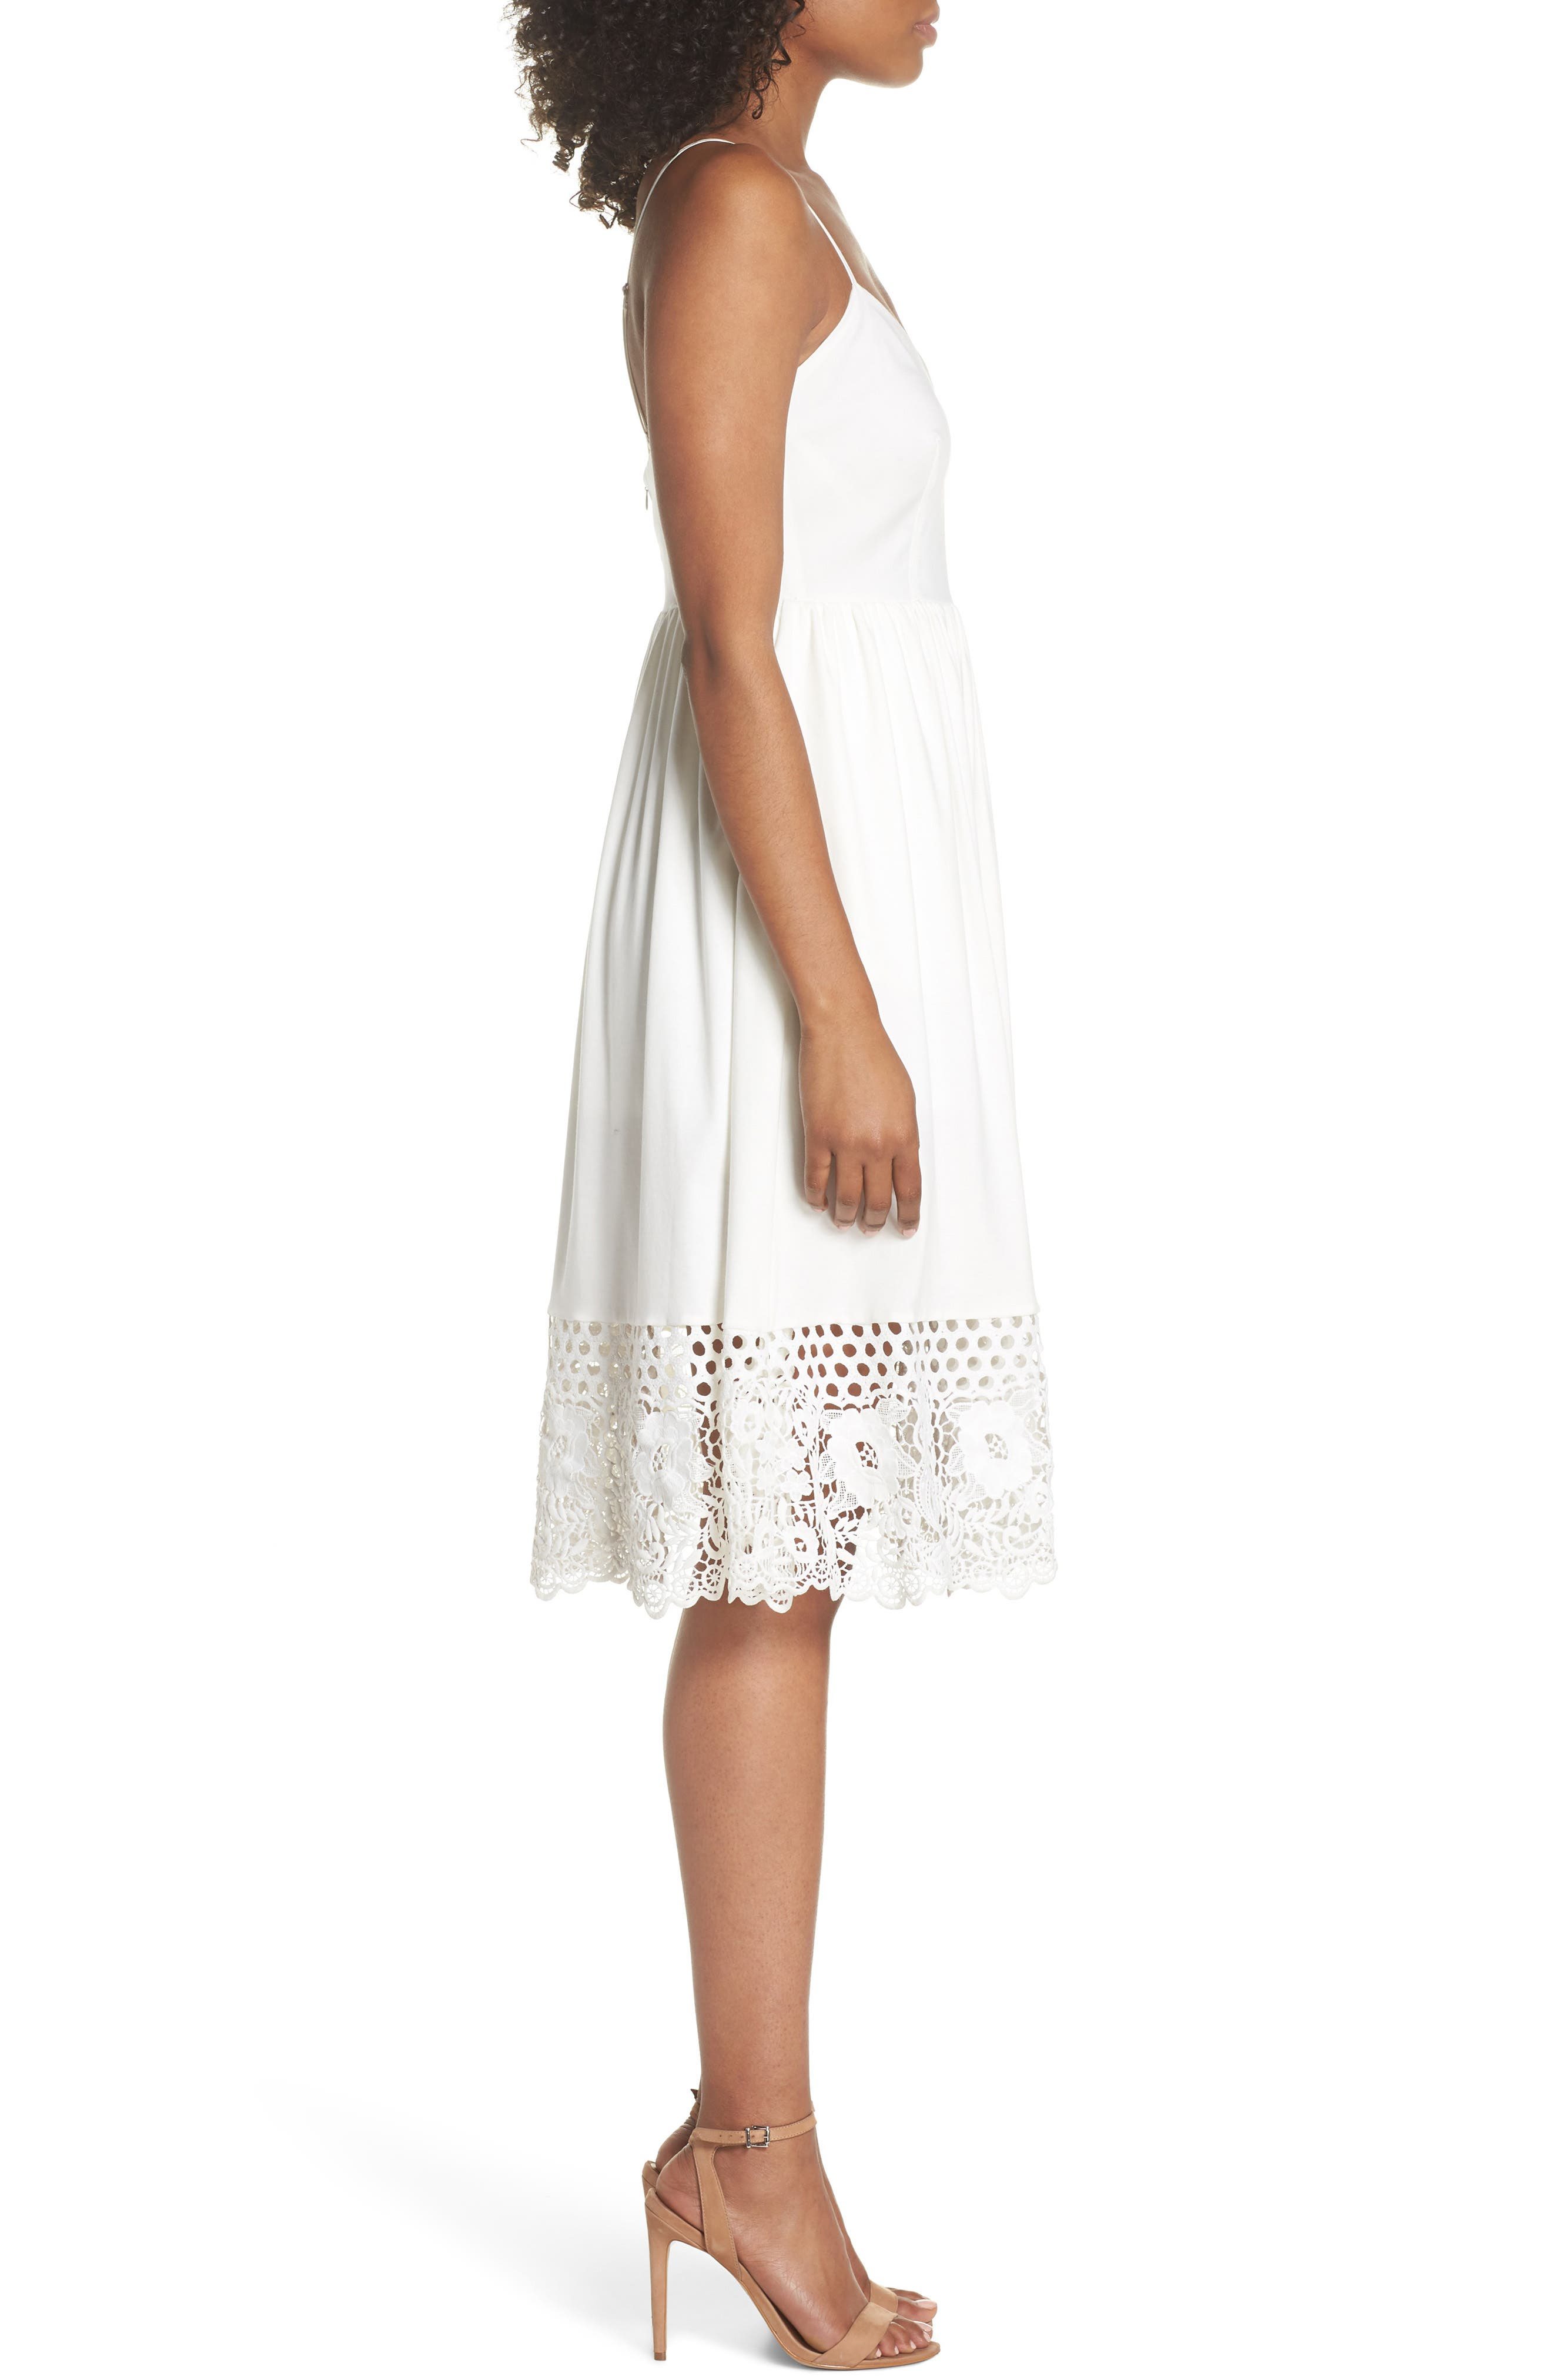 Salerno Lace Trim Jersey Dress,                             Alternate thumbnail 3, color,                             Summer White/ Summer White